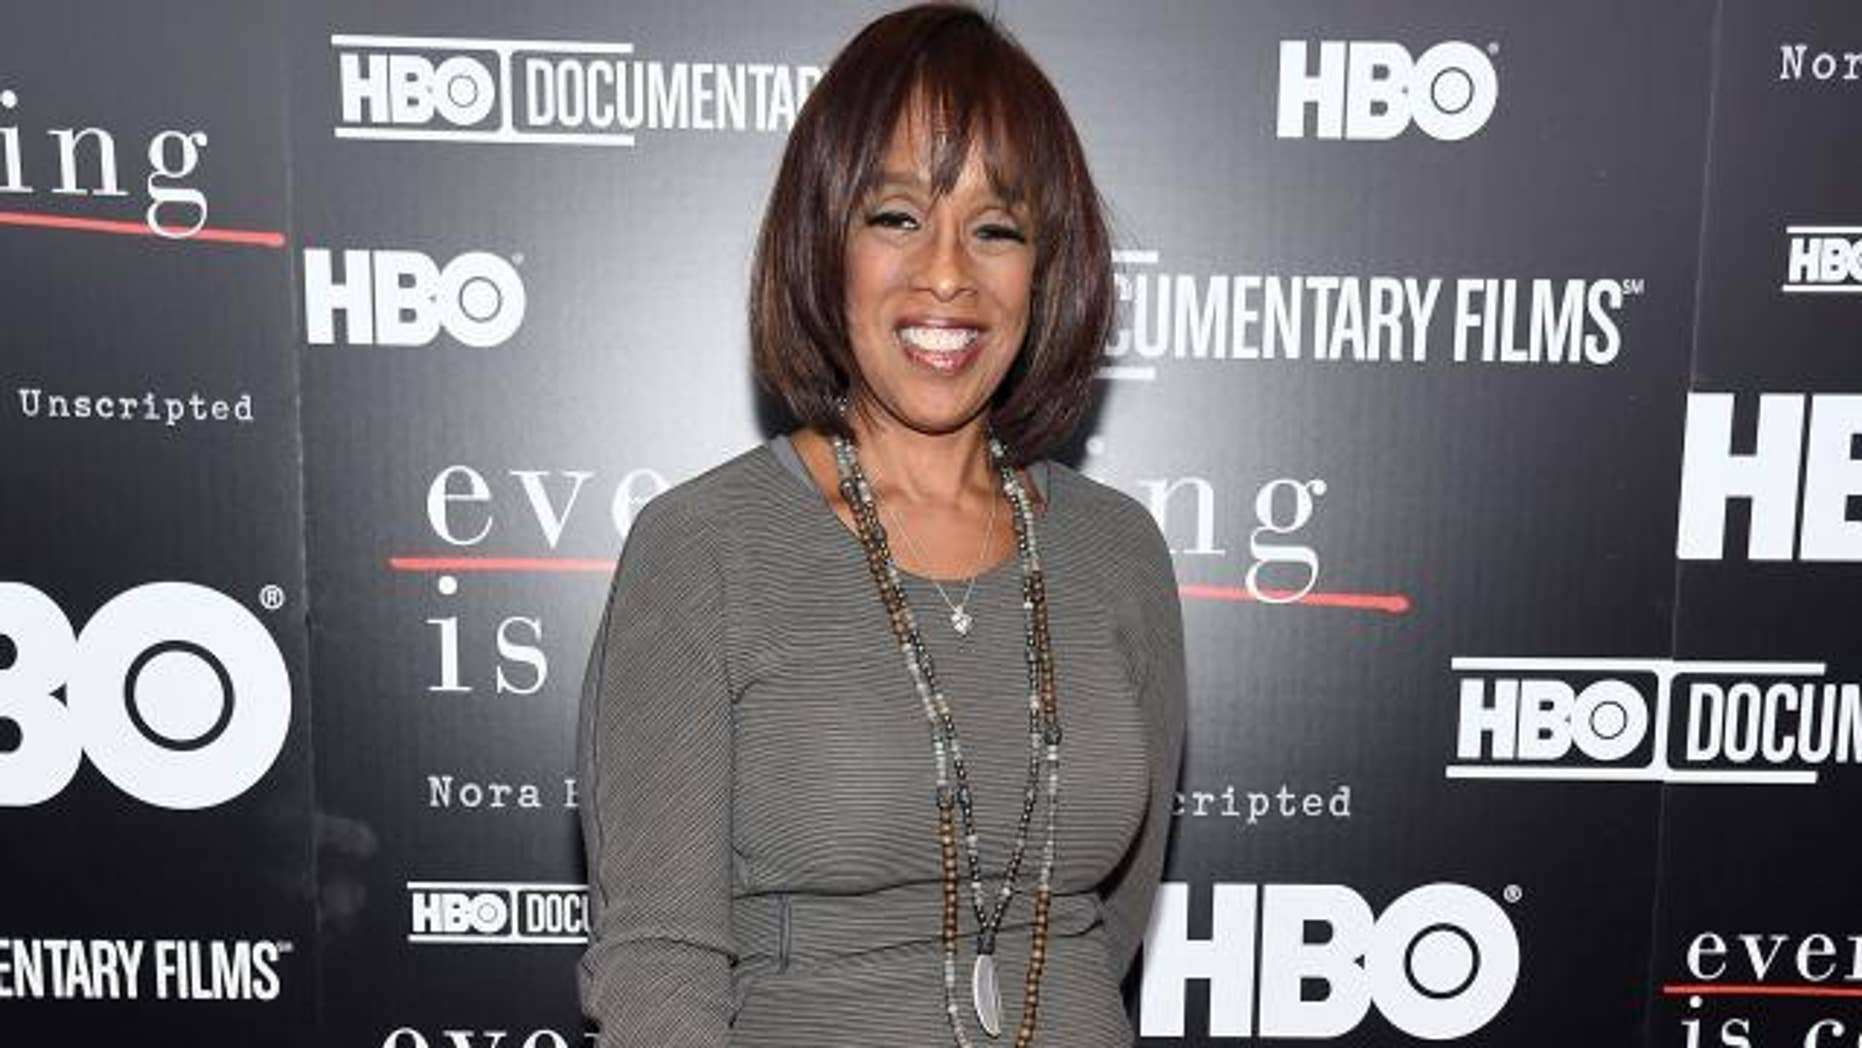 Viewers Praise Gayle King's Composure During Intense R. Kelly Interview